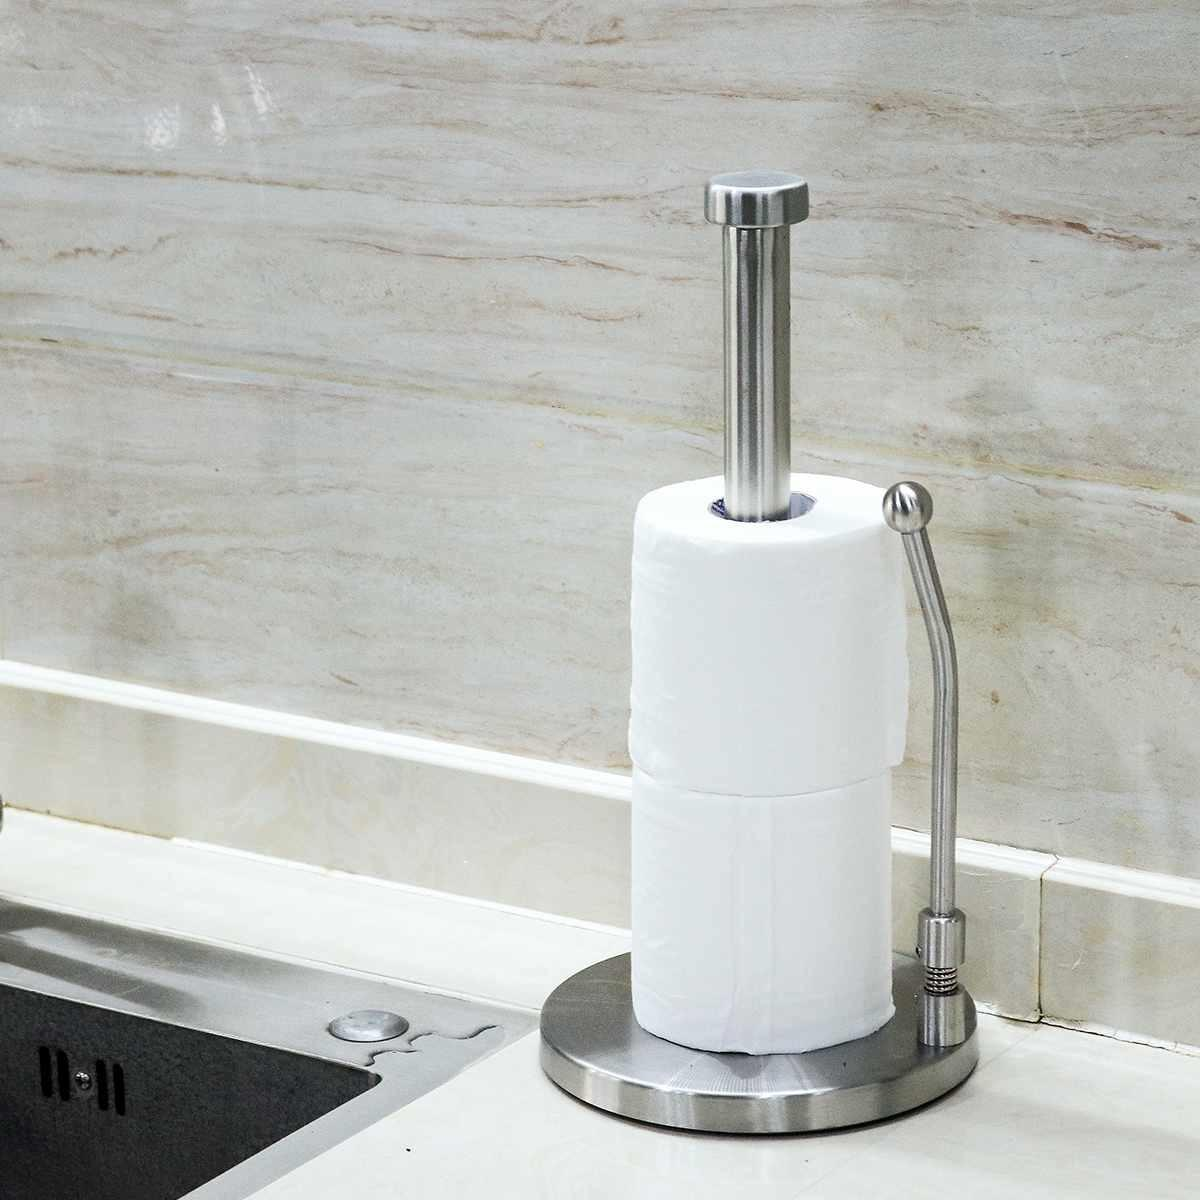 2020 Desktop Vertical Paper Holder Kitchen Napkins Stand Rack Toilet Towel Tissue Holder Paper Towel Dispenser Bathroom Hardware T200425 From Highqualit09 23 32 Dhgate Com